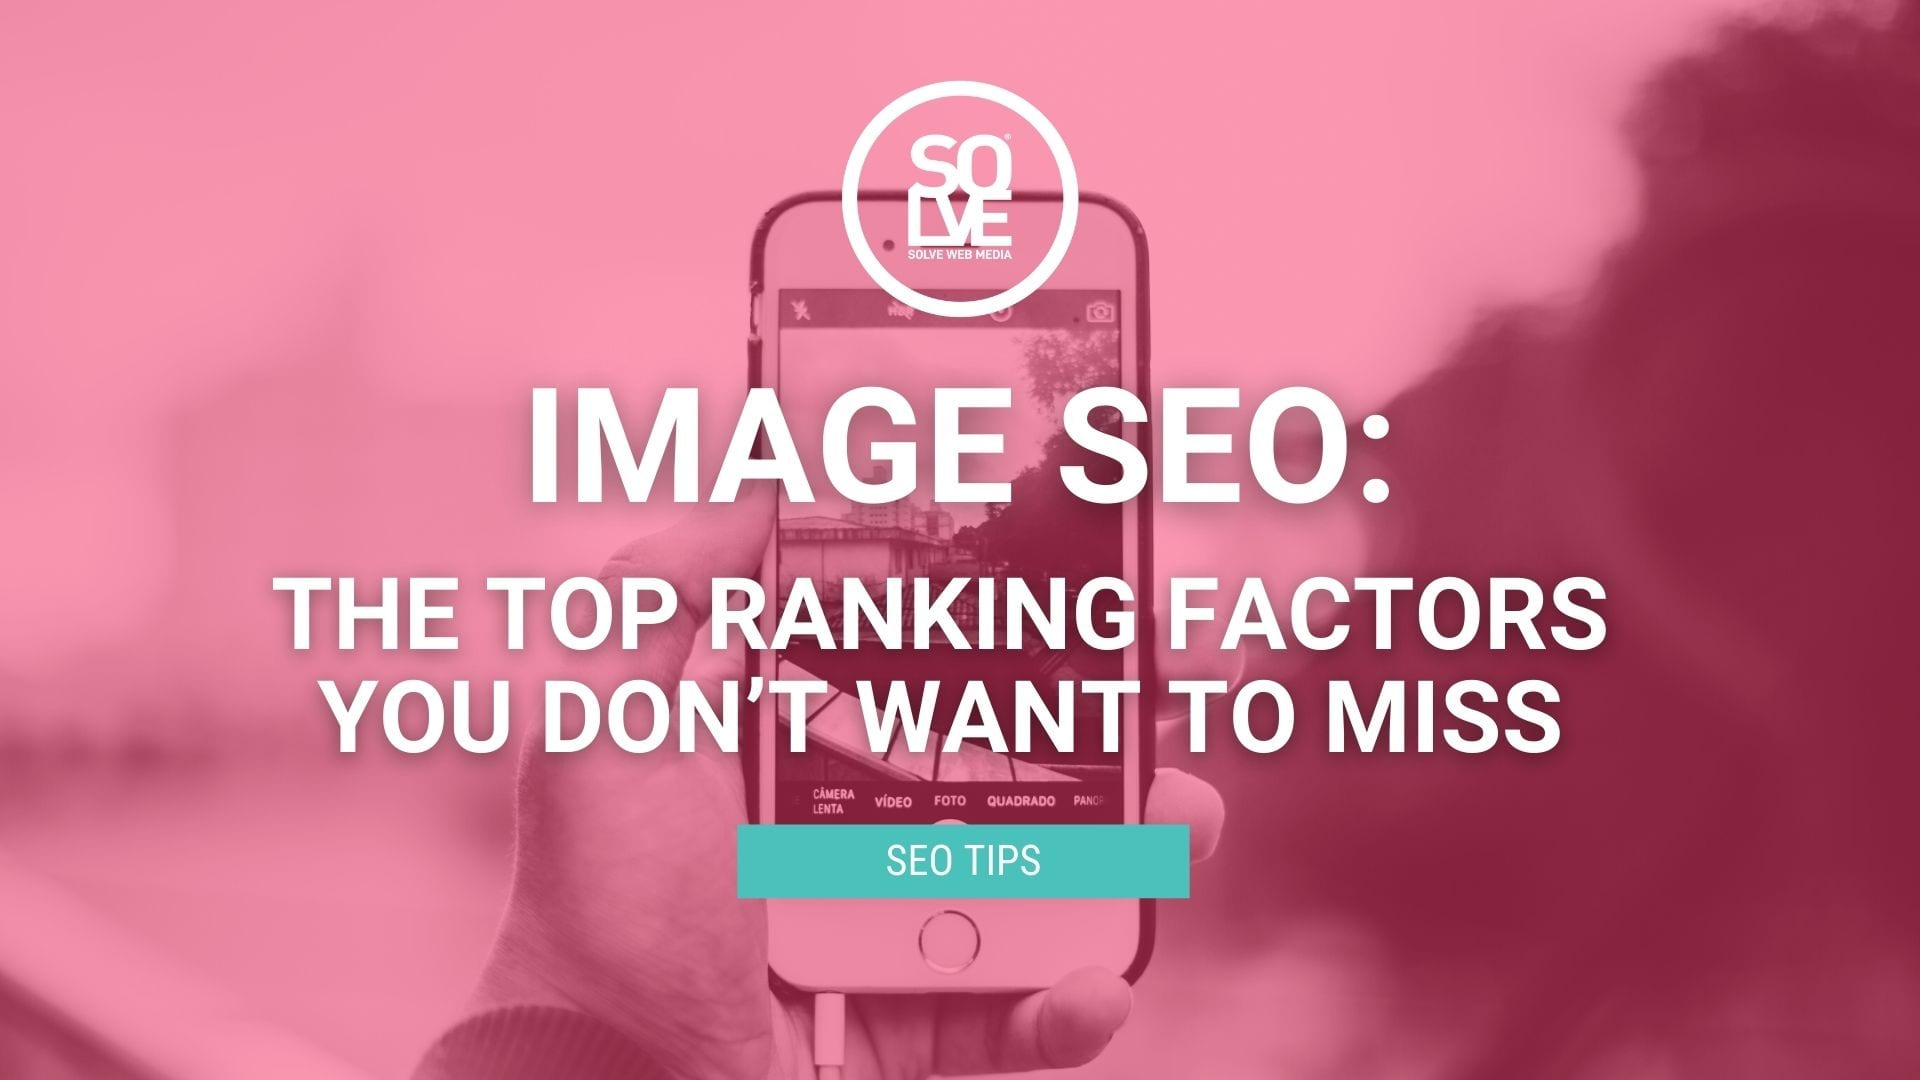 Image SEO: The Top Ranking Factors You Don't Want To Miss 1